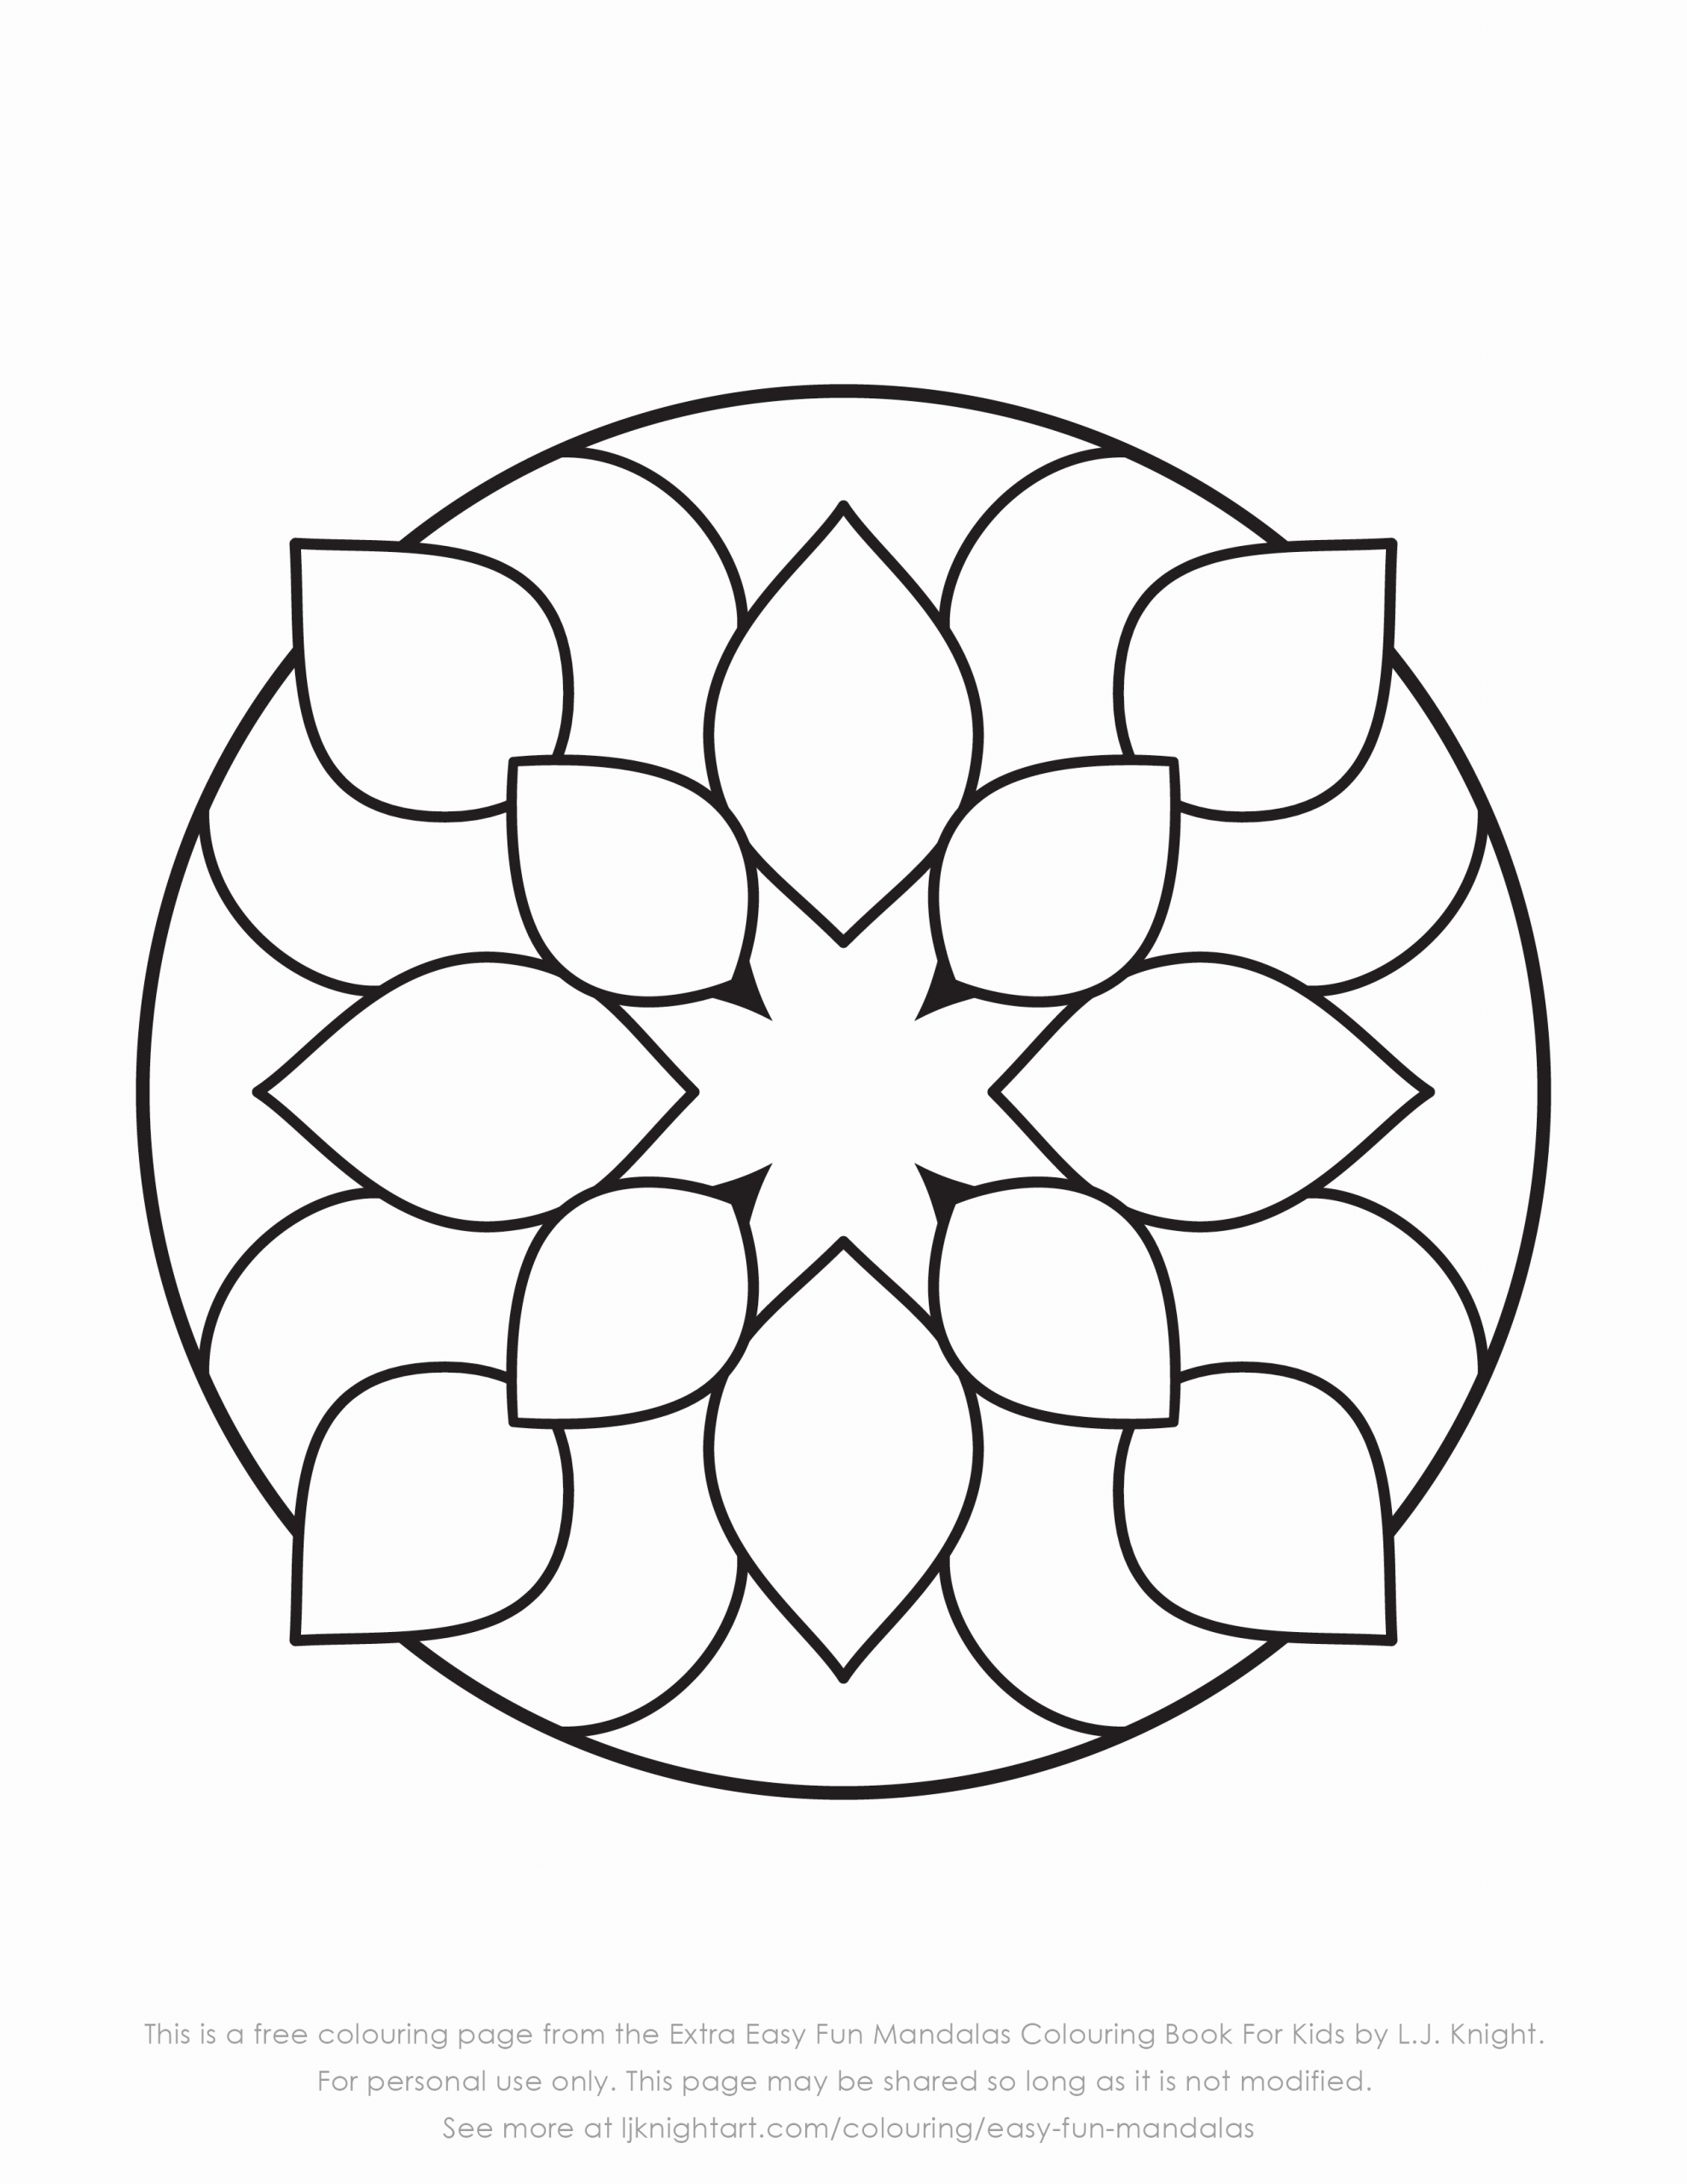 Easy Mandala Coloring Pages For Kids In